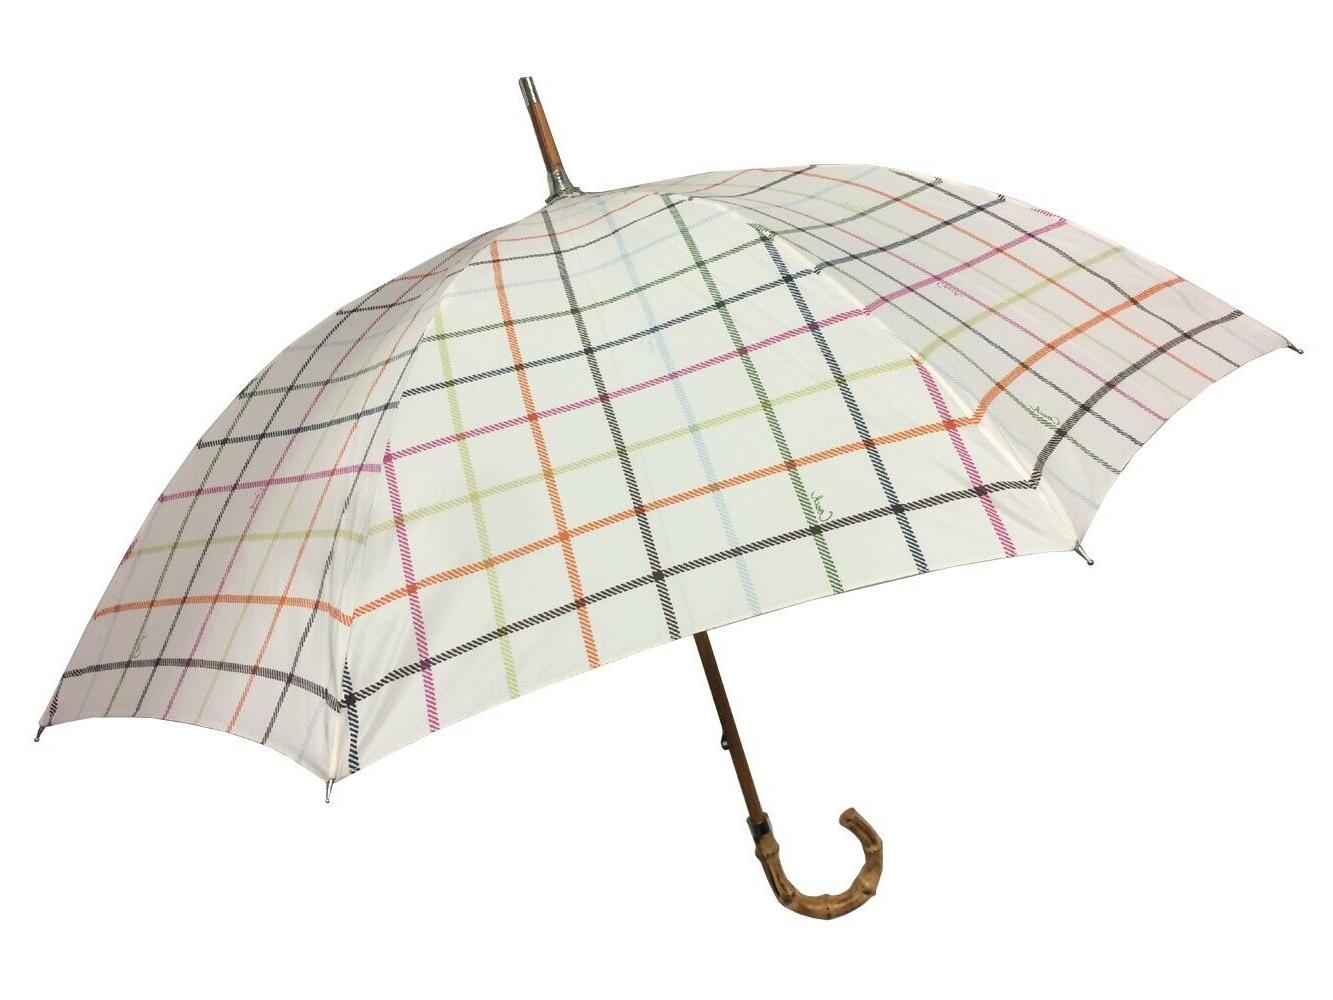 tattersall stick umbrella bamboo handle nwt msrp